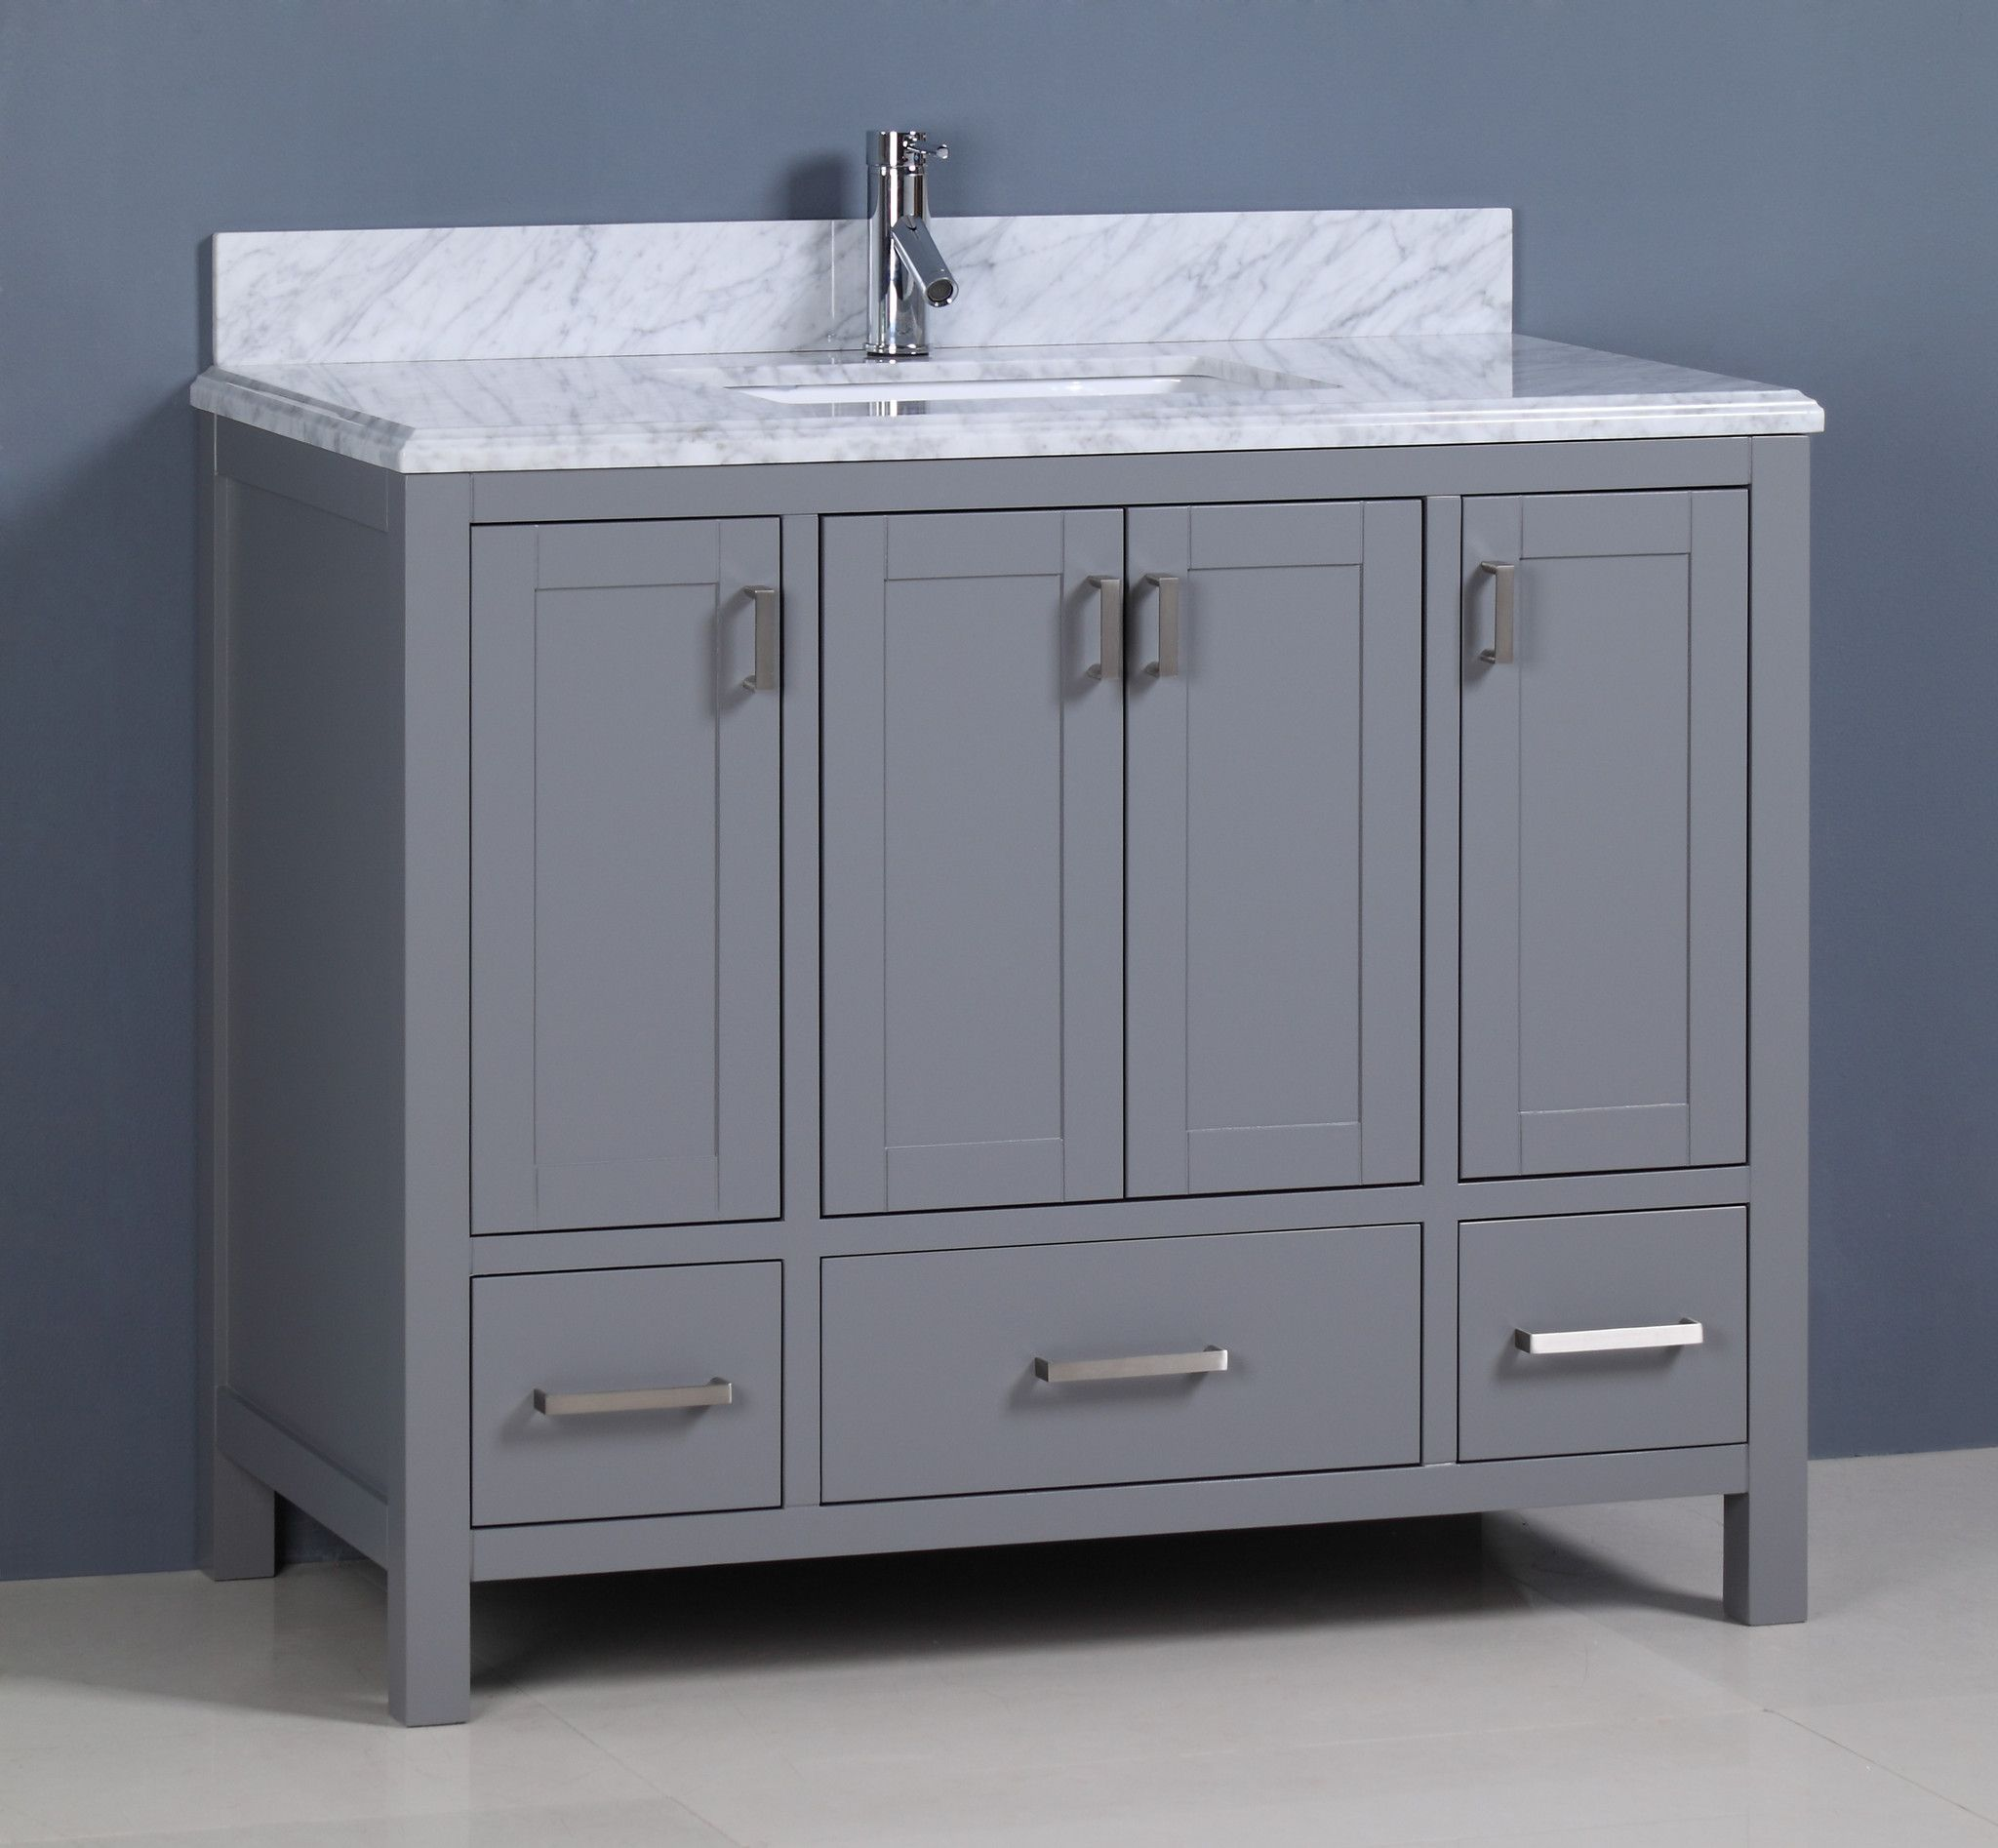 sink store small units lovely bathroom vanity of